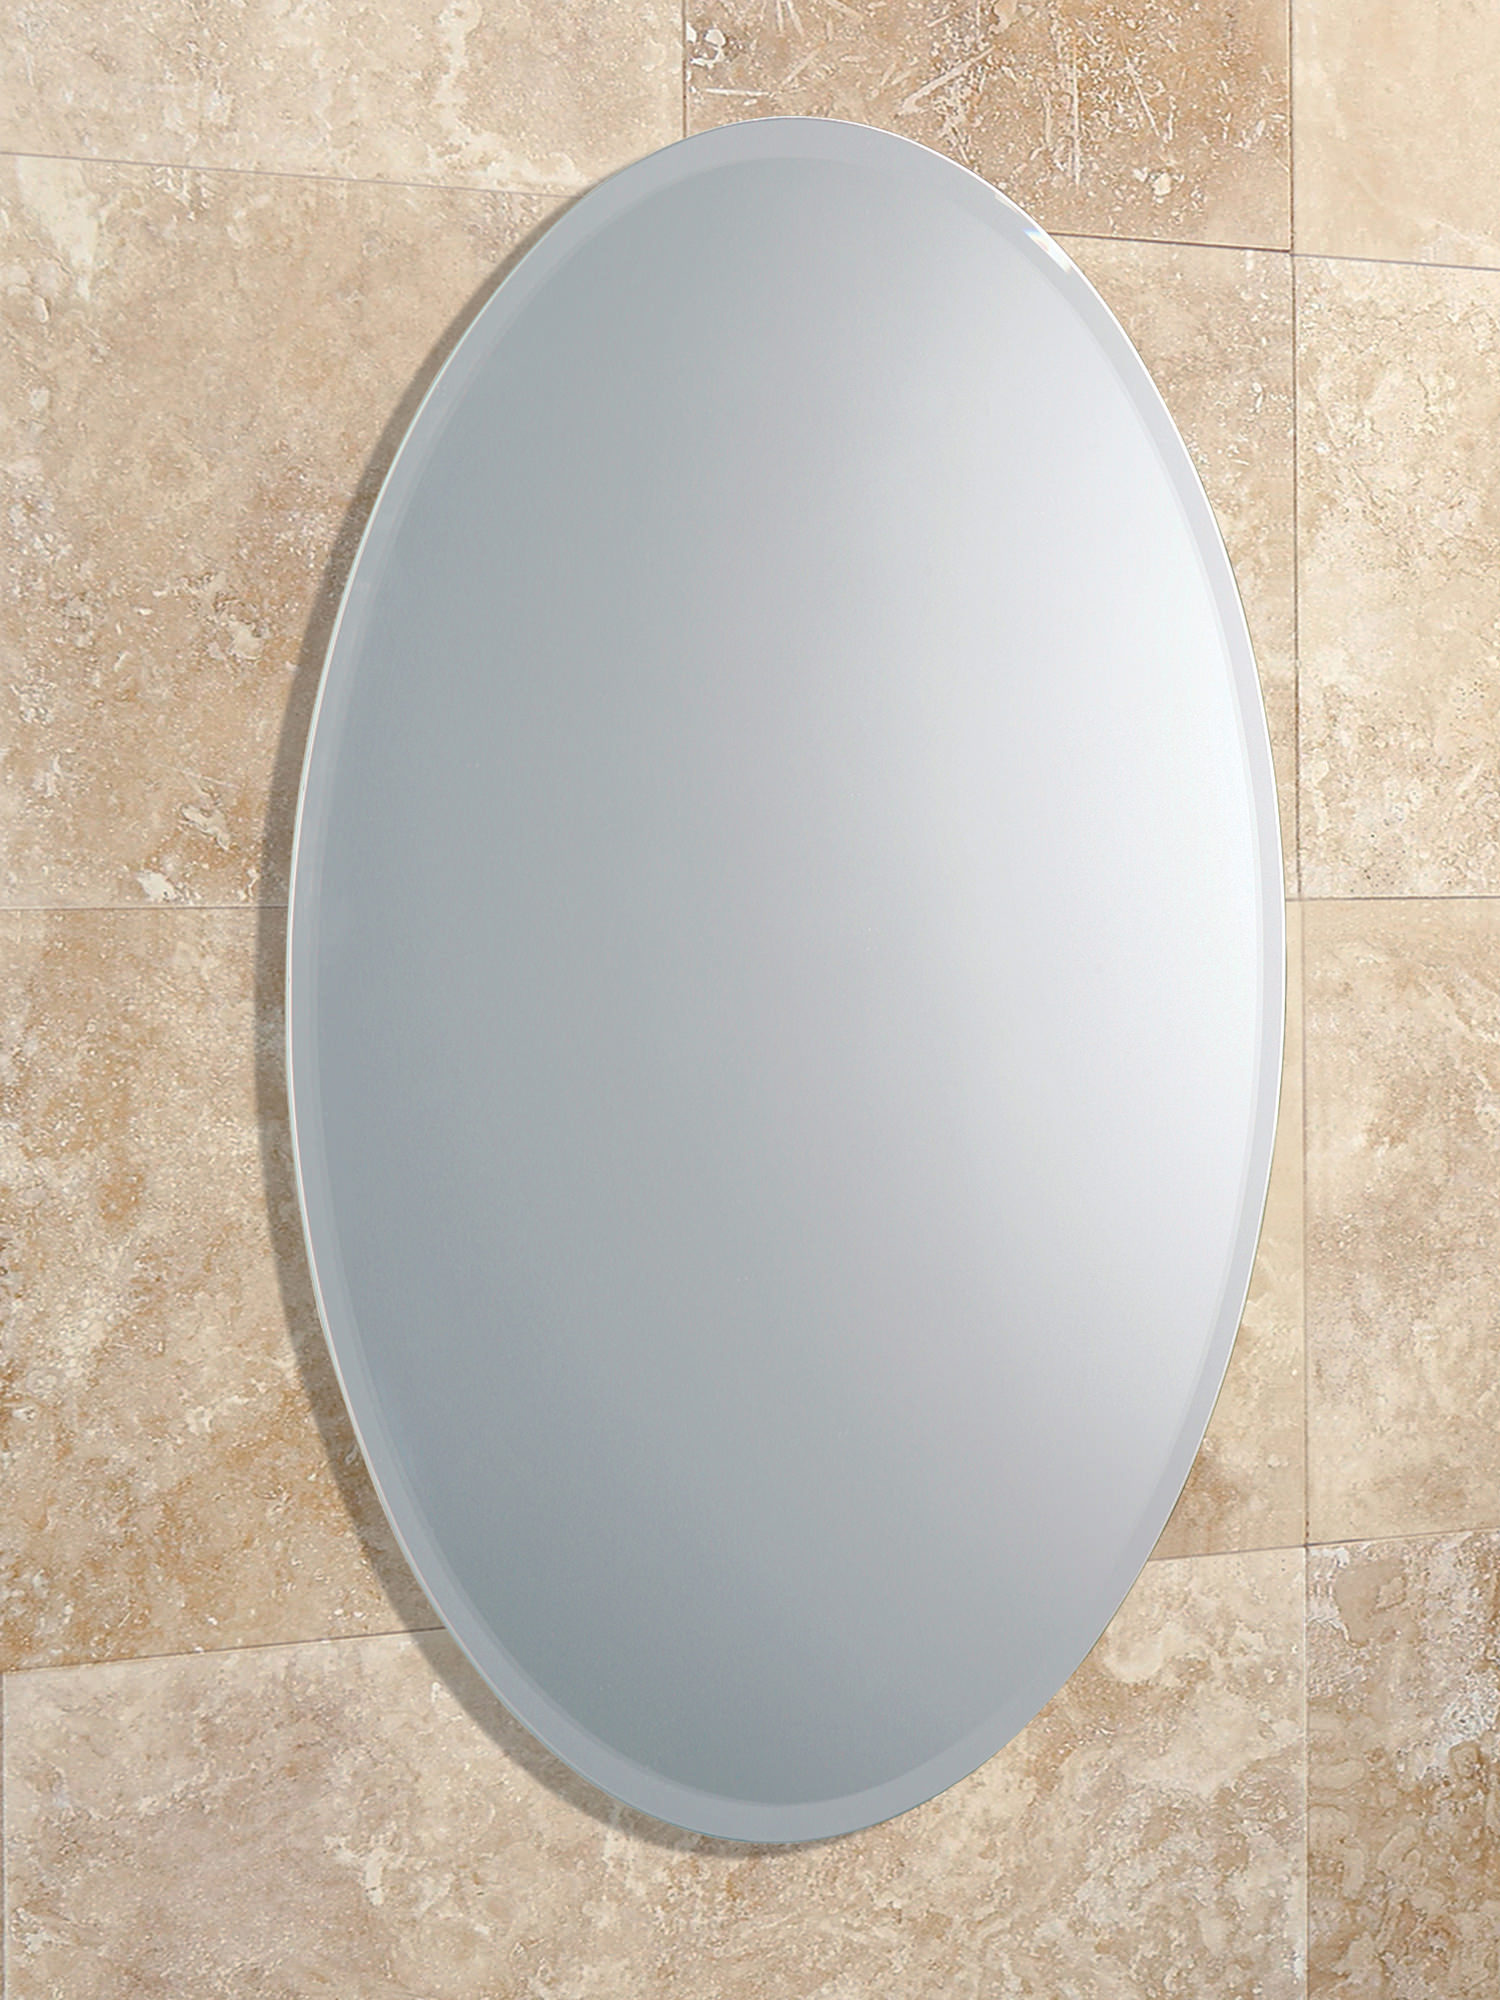 Flat Bathroom Mirrors